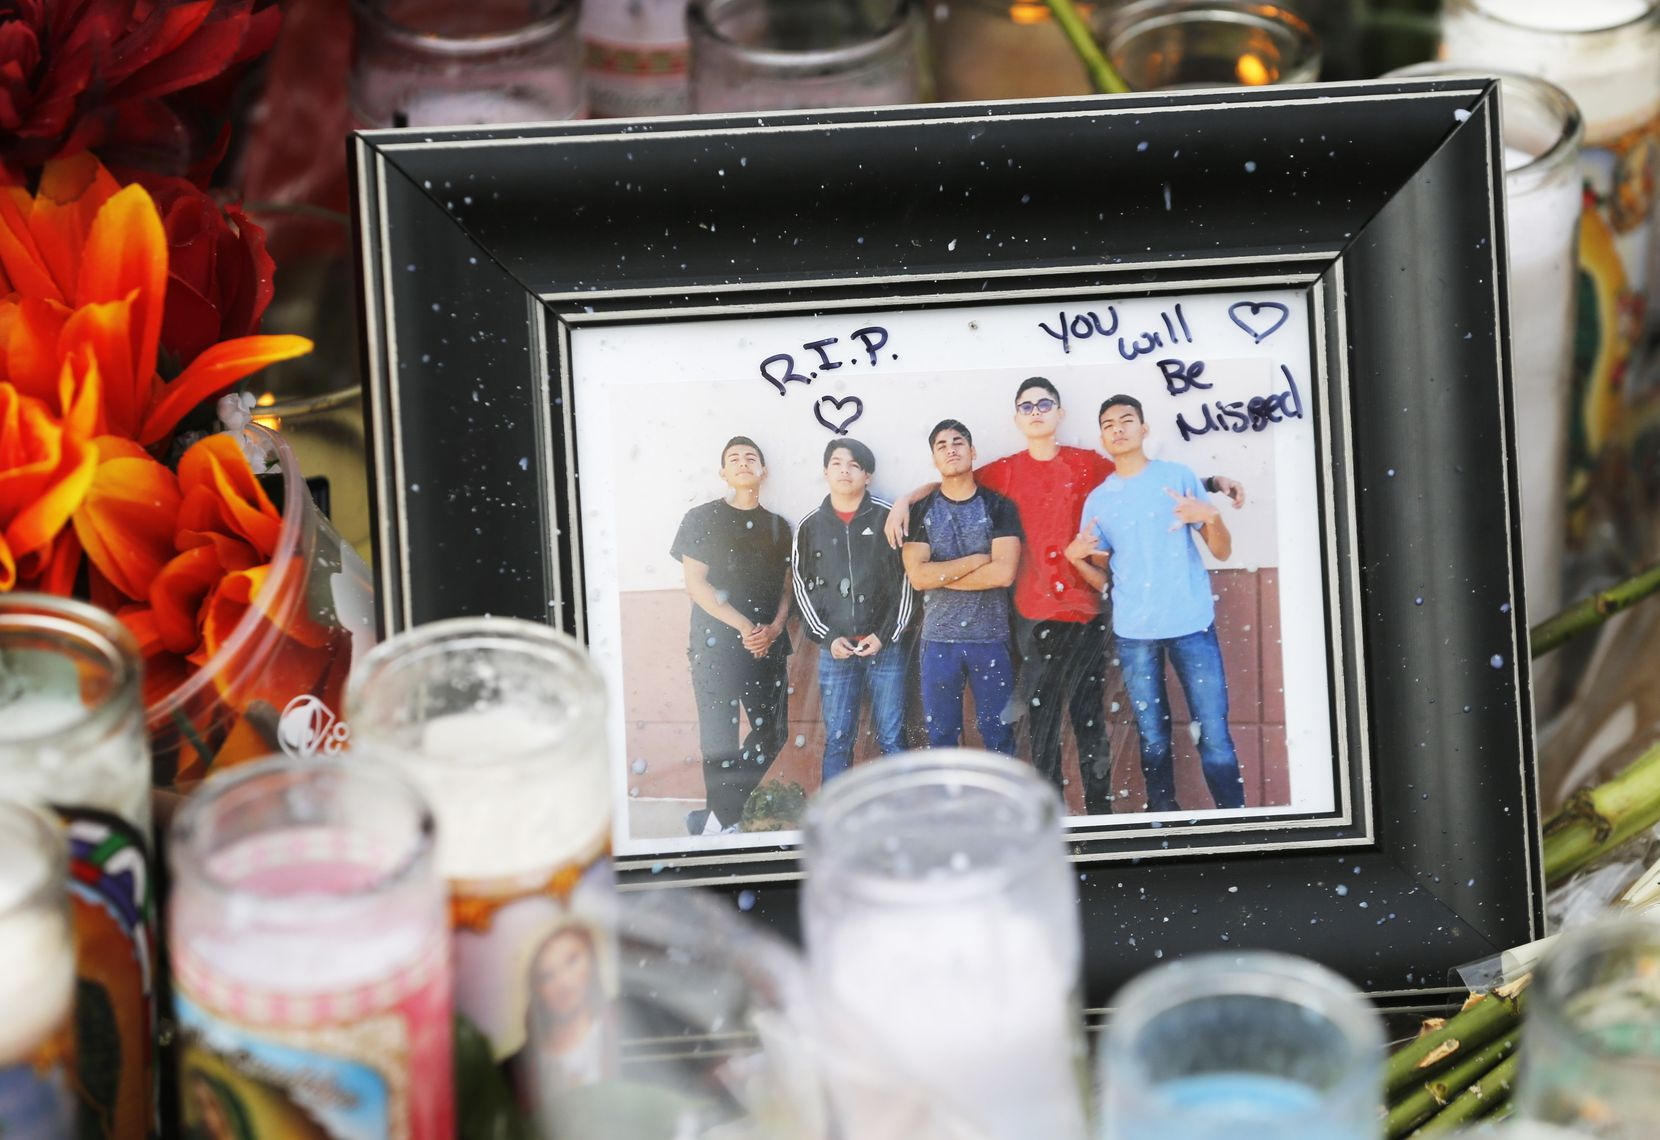 Photo of Javier Amir Rodriguez (second from left) left near a cross with his name on it at a makeshift memorial for victims at a shopping complex near the Walmart of a mass shooting in El Paso, Texas on Tuesday, August 6, 2019.